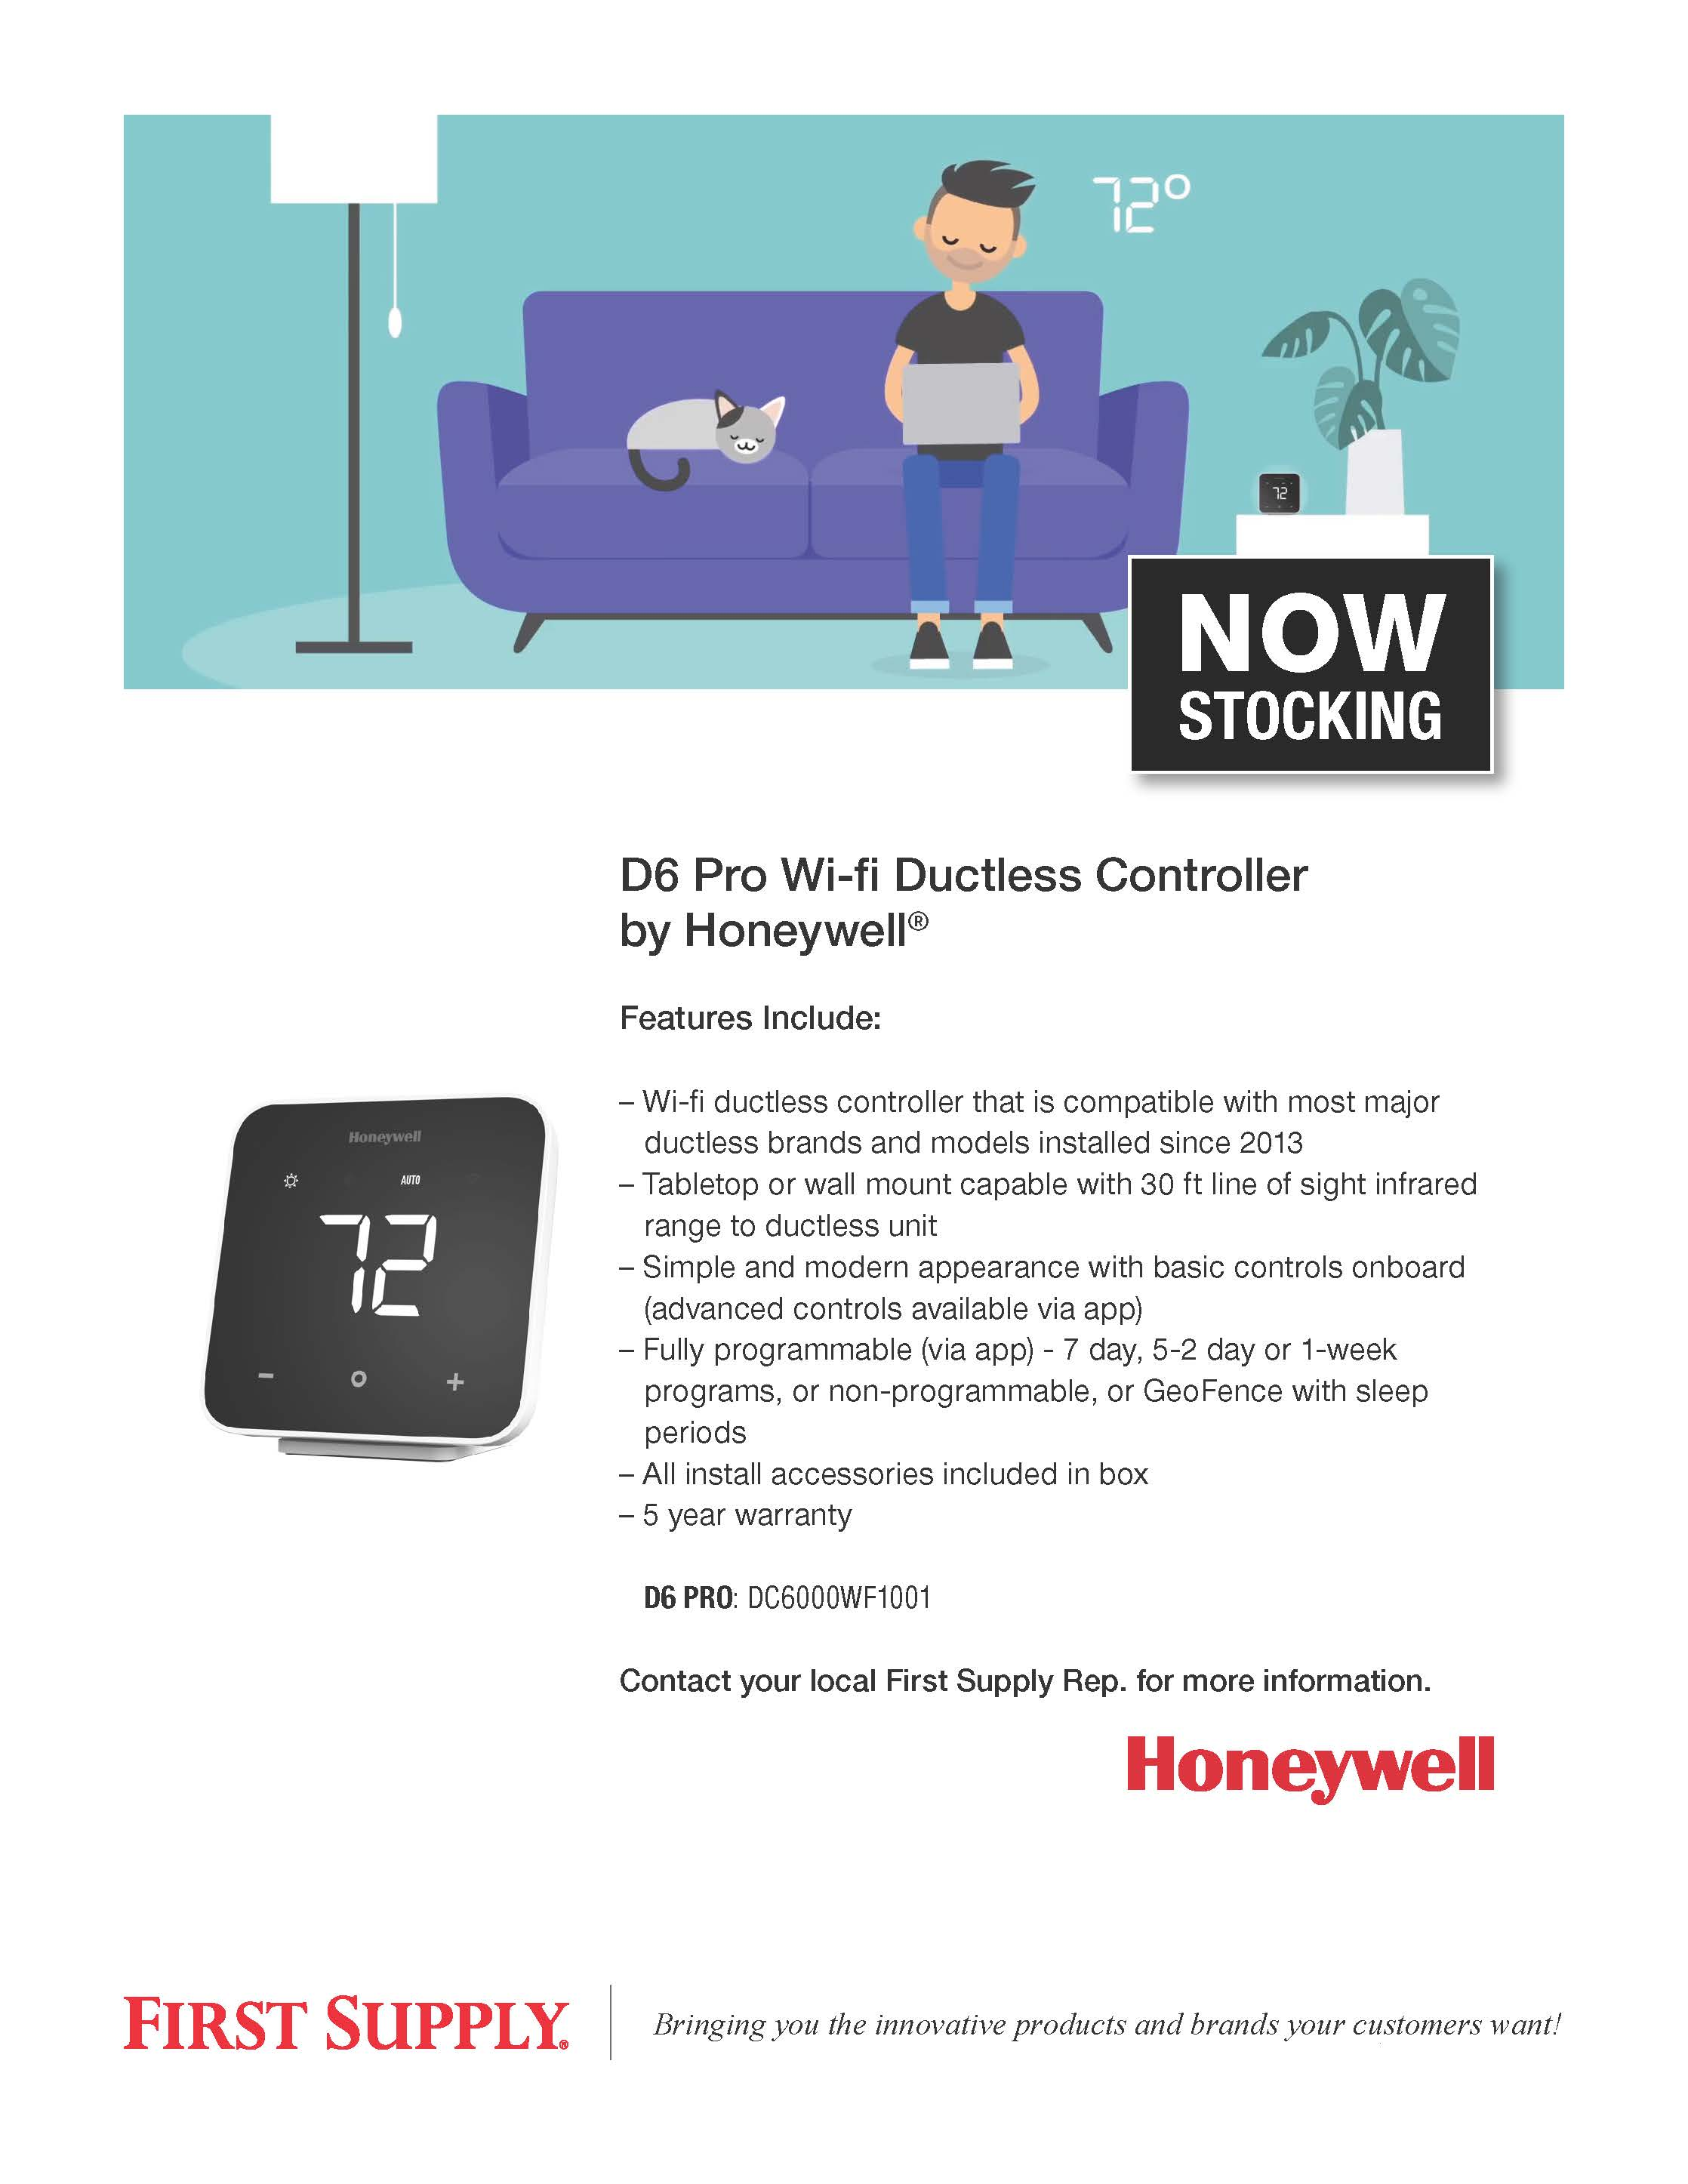 Honeywell D6 Pro Wi-fi Ductless Controller [ download pdf ]